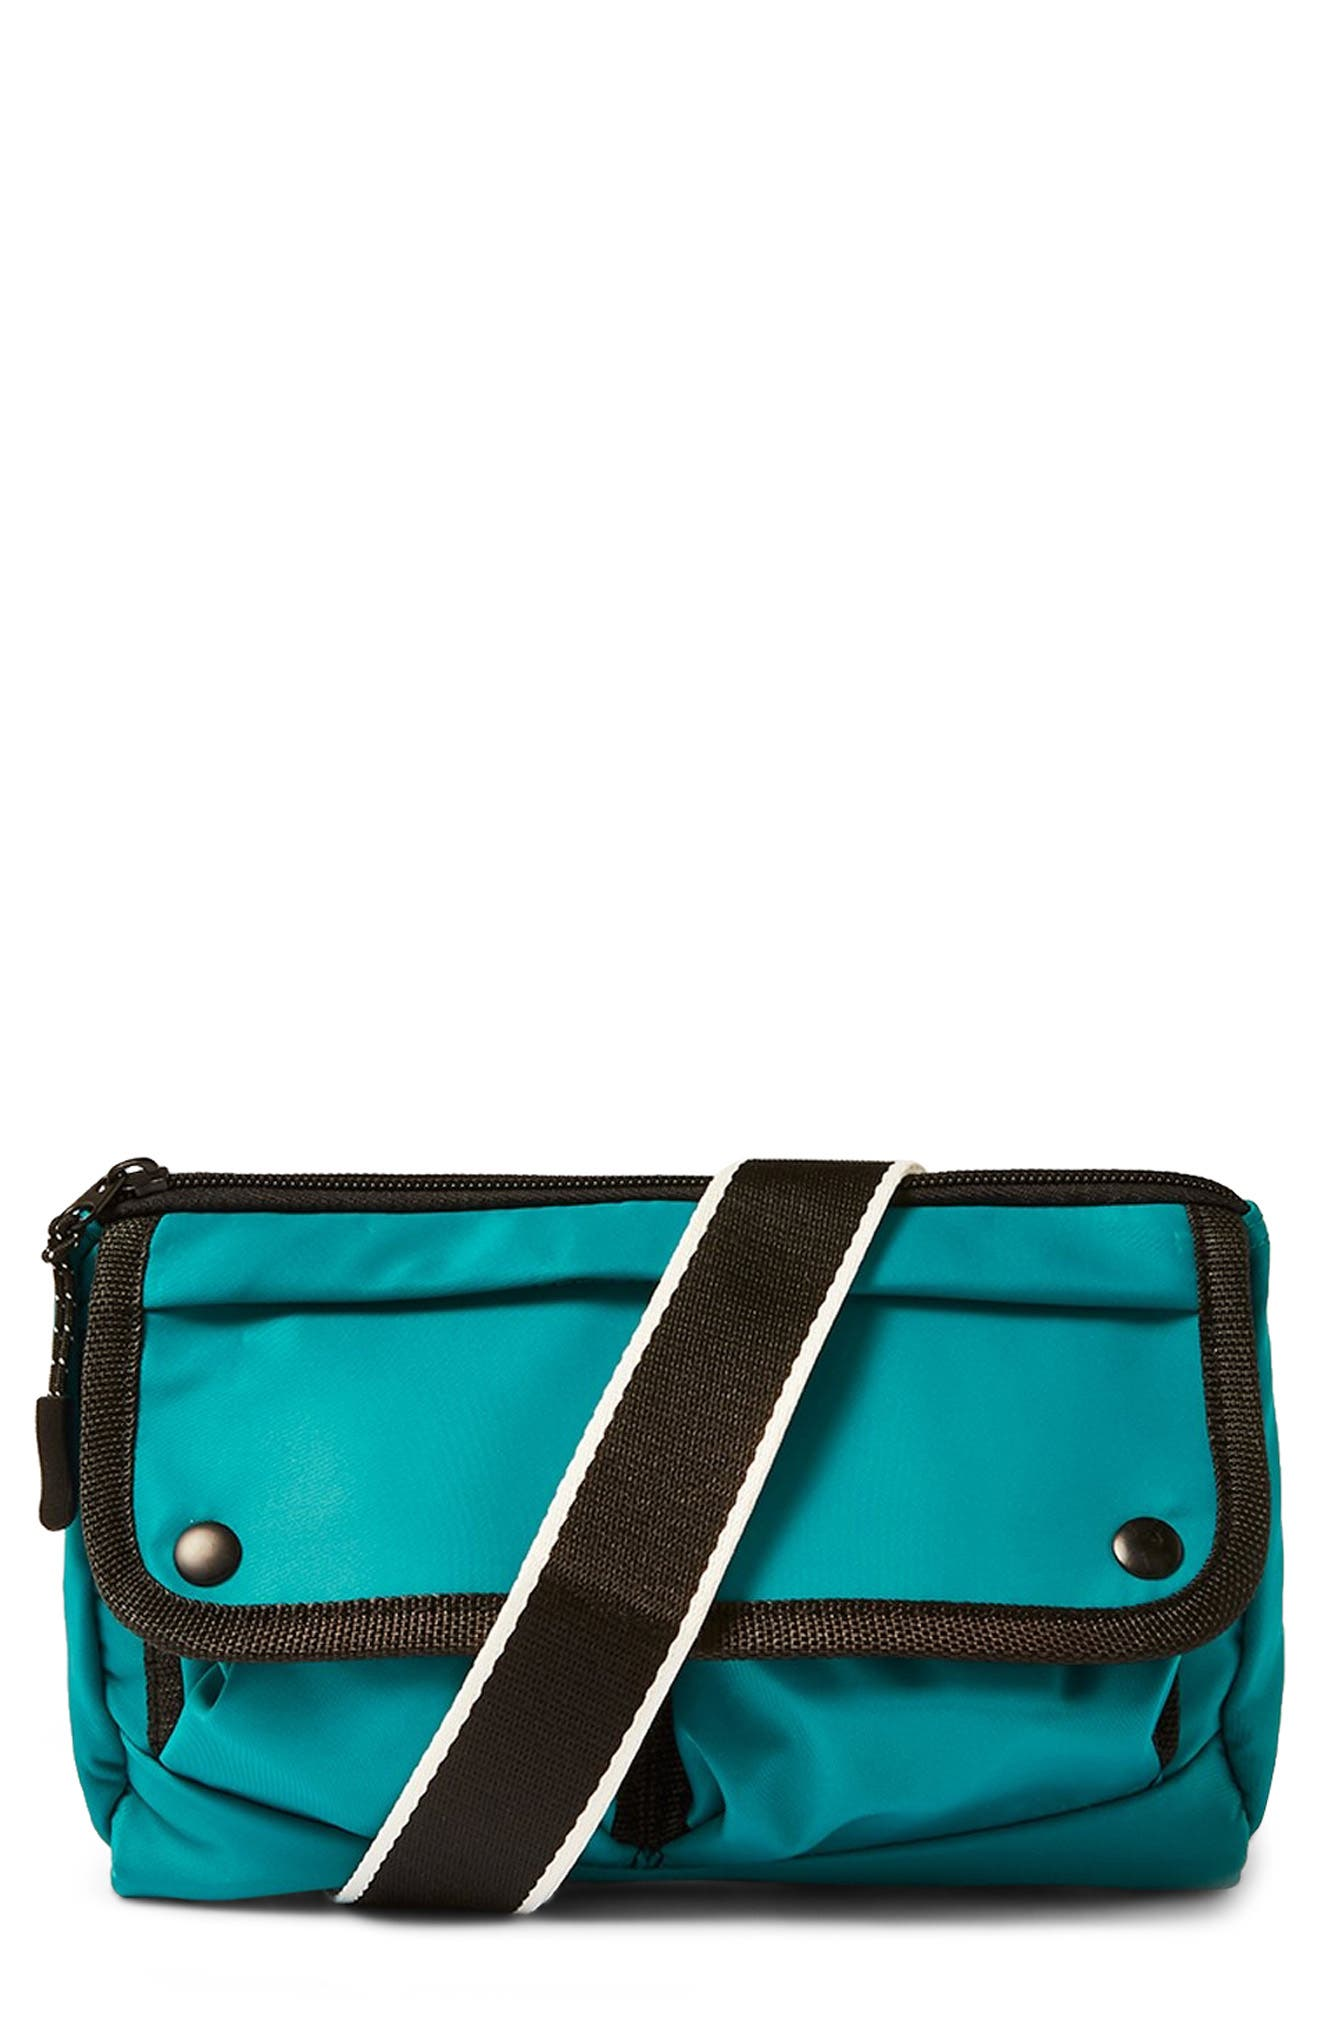 Sabre Crossbody Belt Bag,                         Main,                         color, DARK BLUE